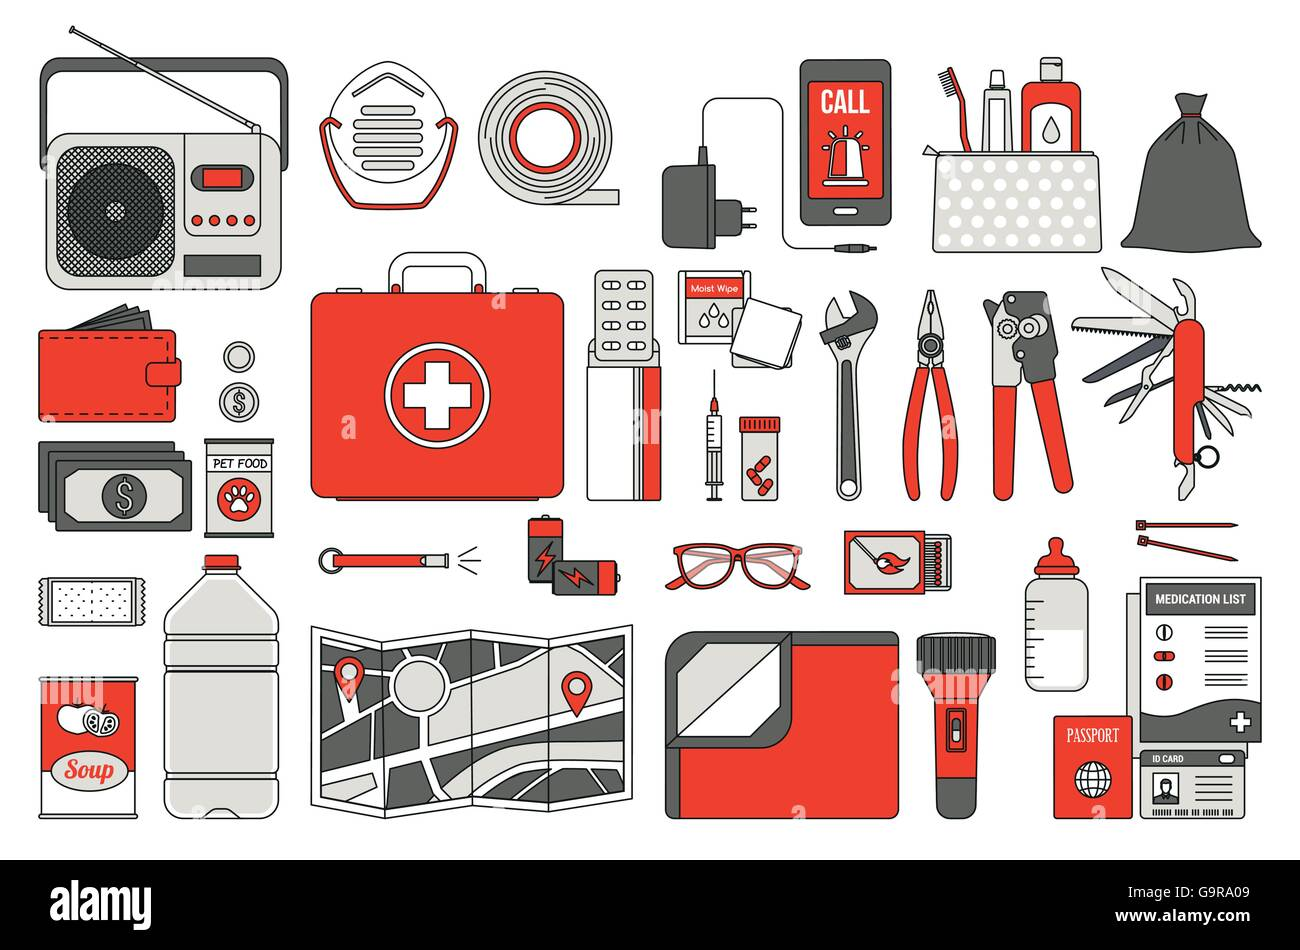 Survival emergency kit for evacuation, vector objects set on white background - Stock Image